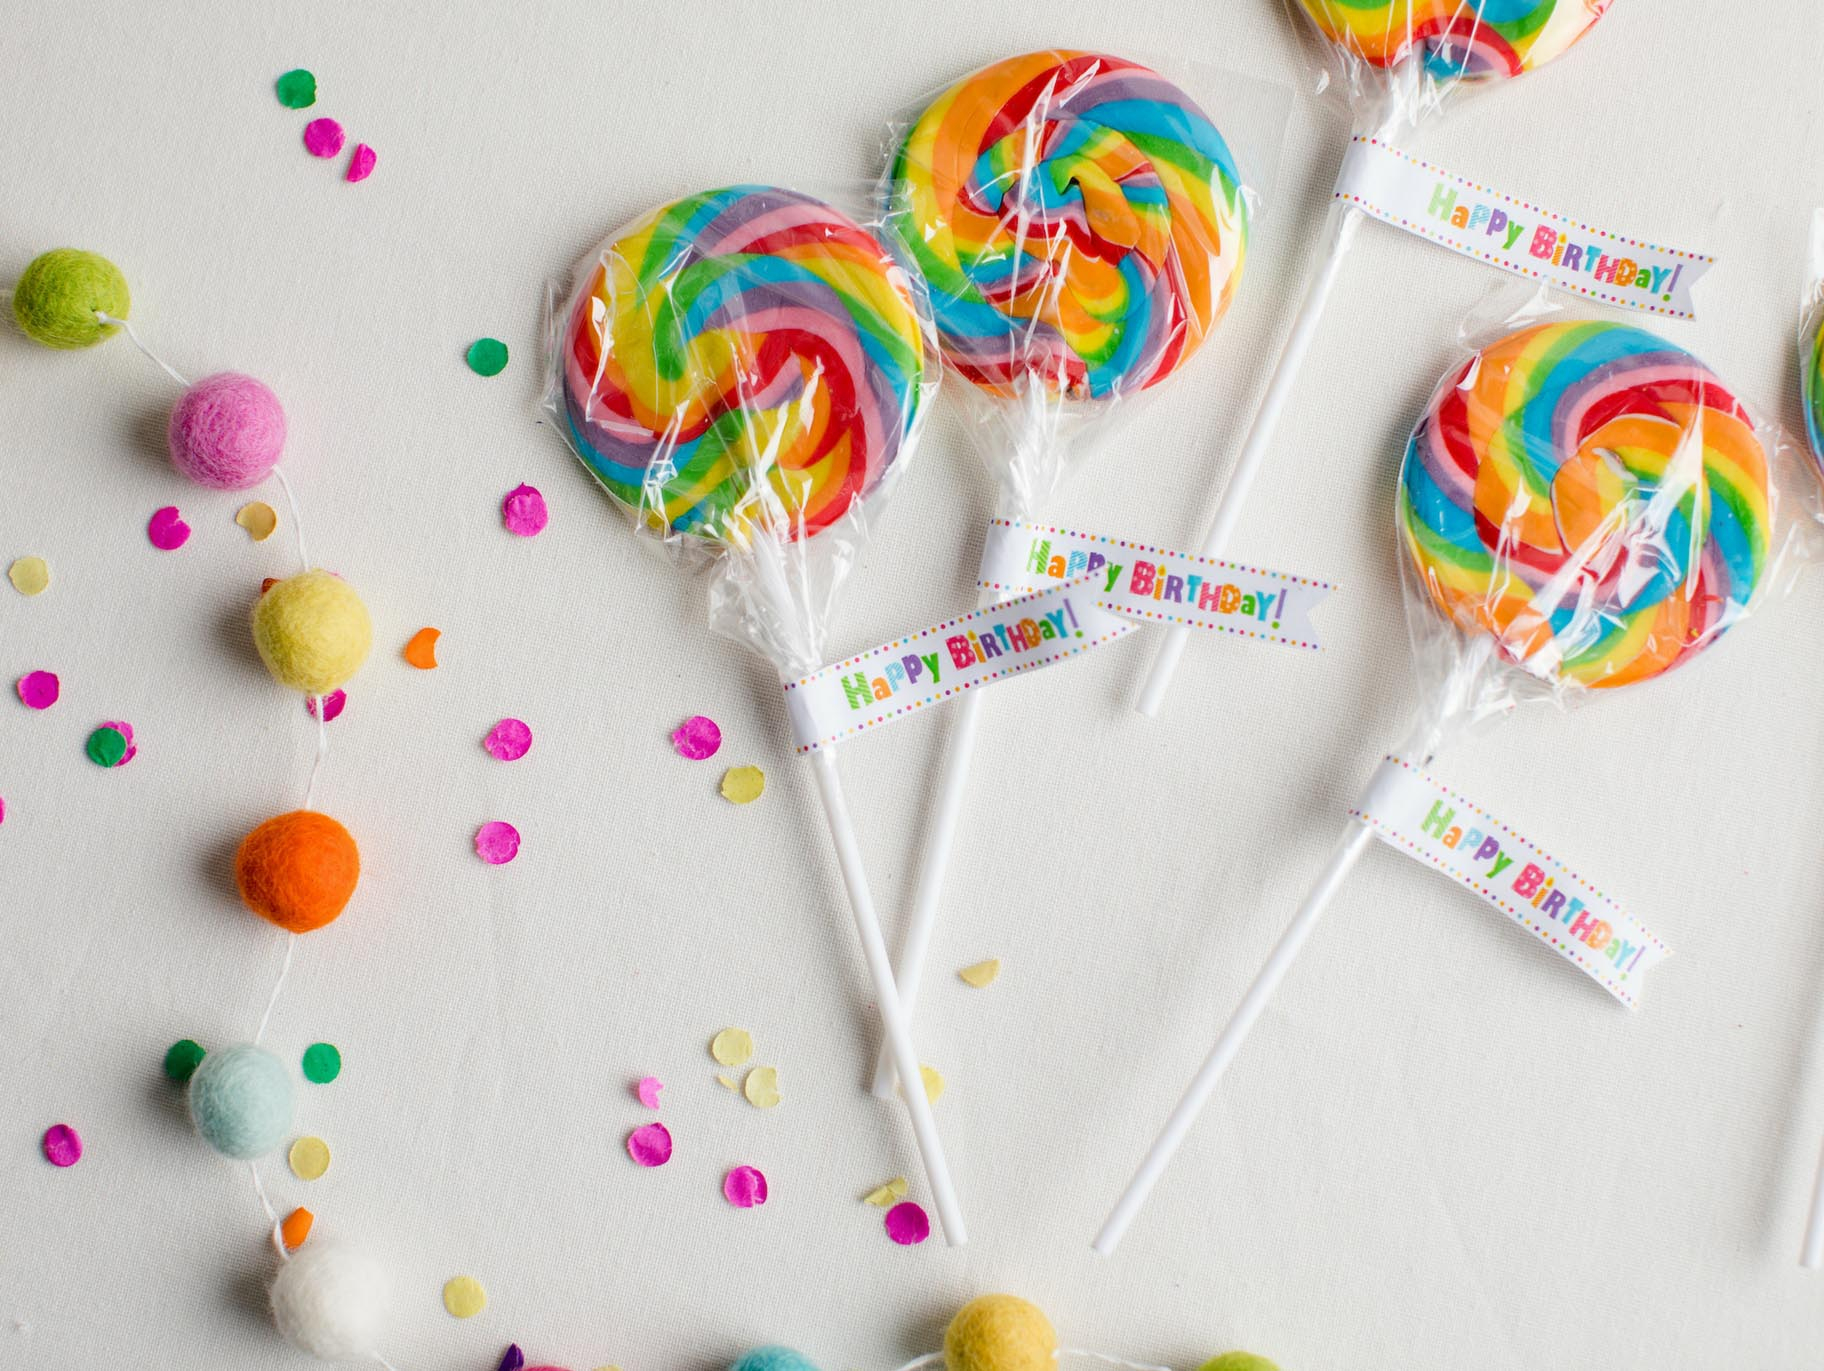 Free Printable Birthday Party Favor Tags - Party Favor Tags Free Printable